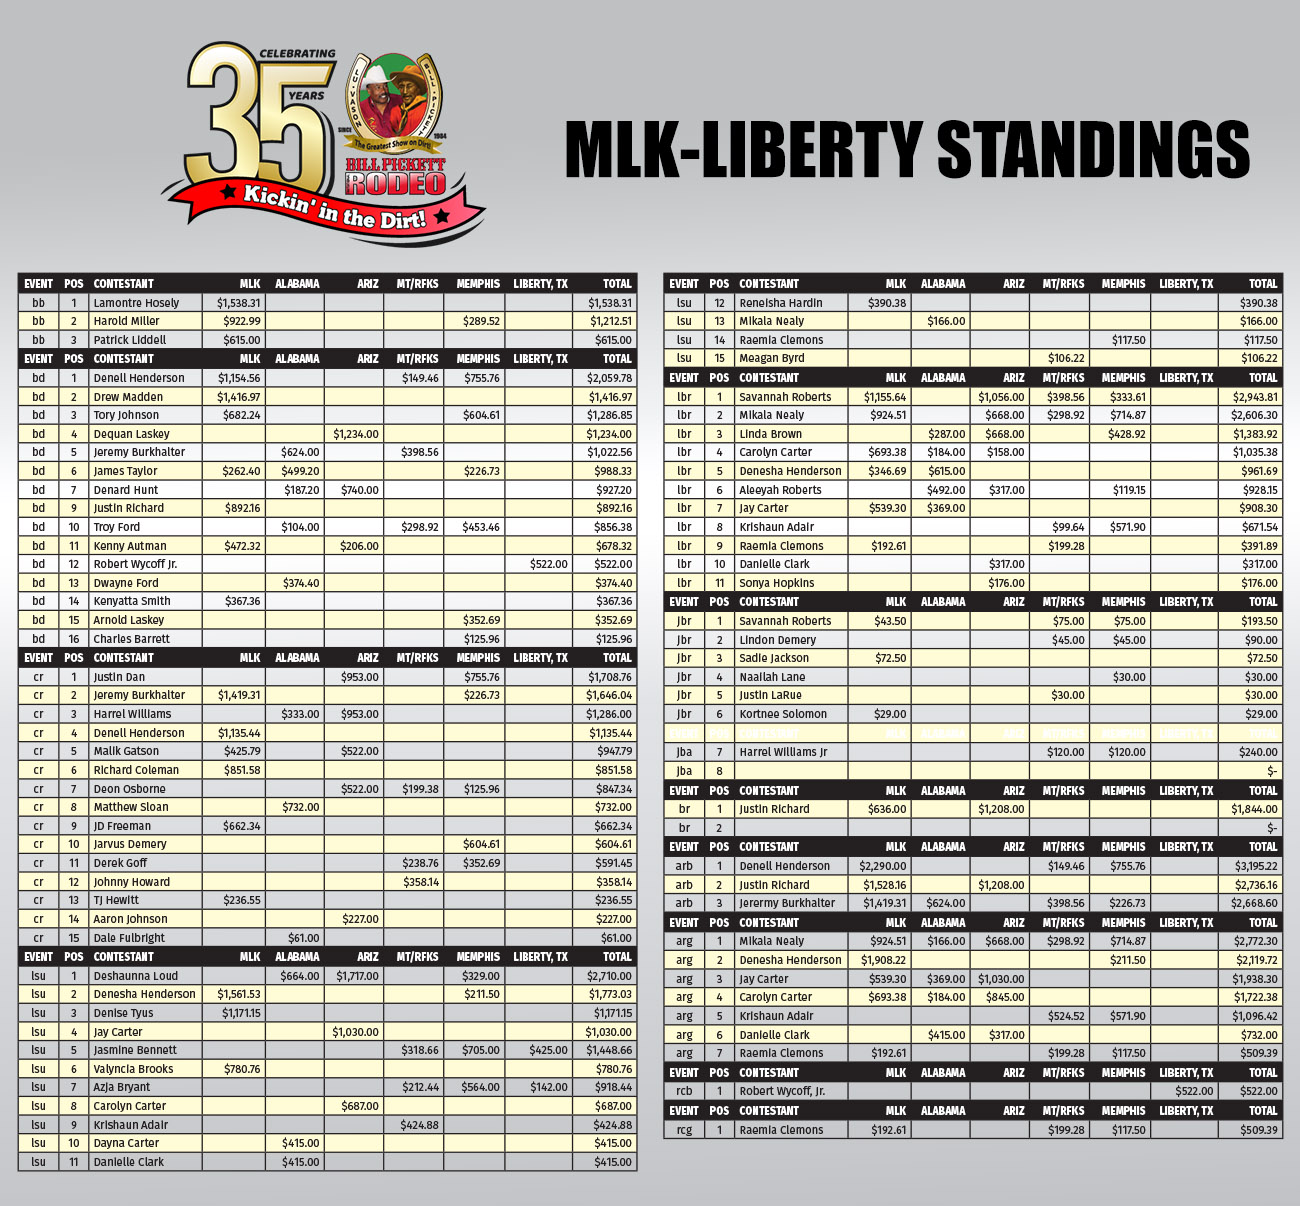 2018 Standings Celebrating Our 35th Anniversary